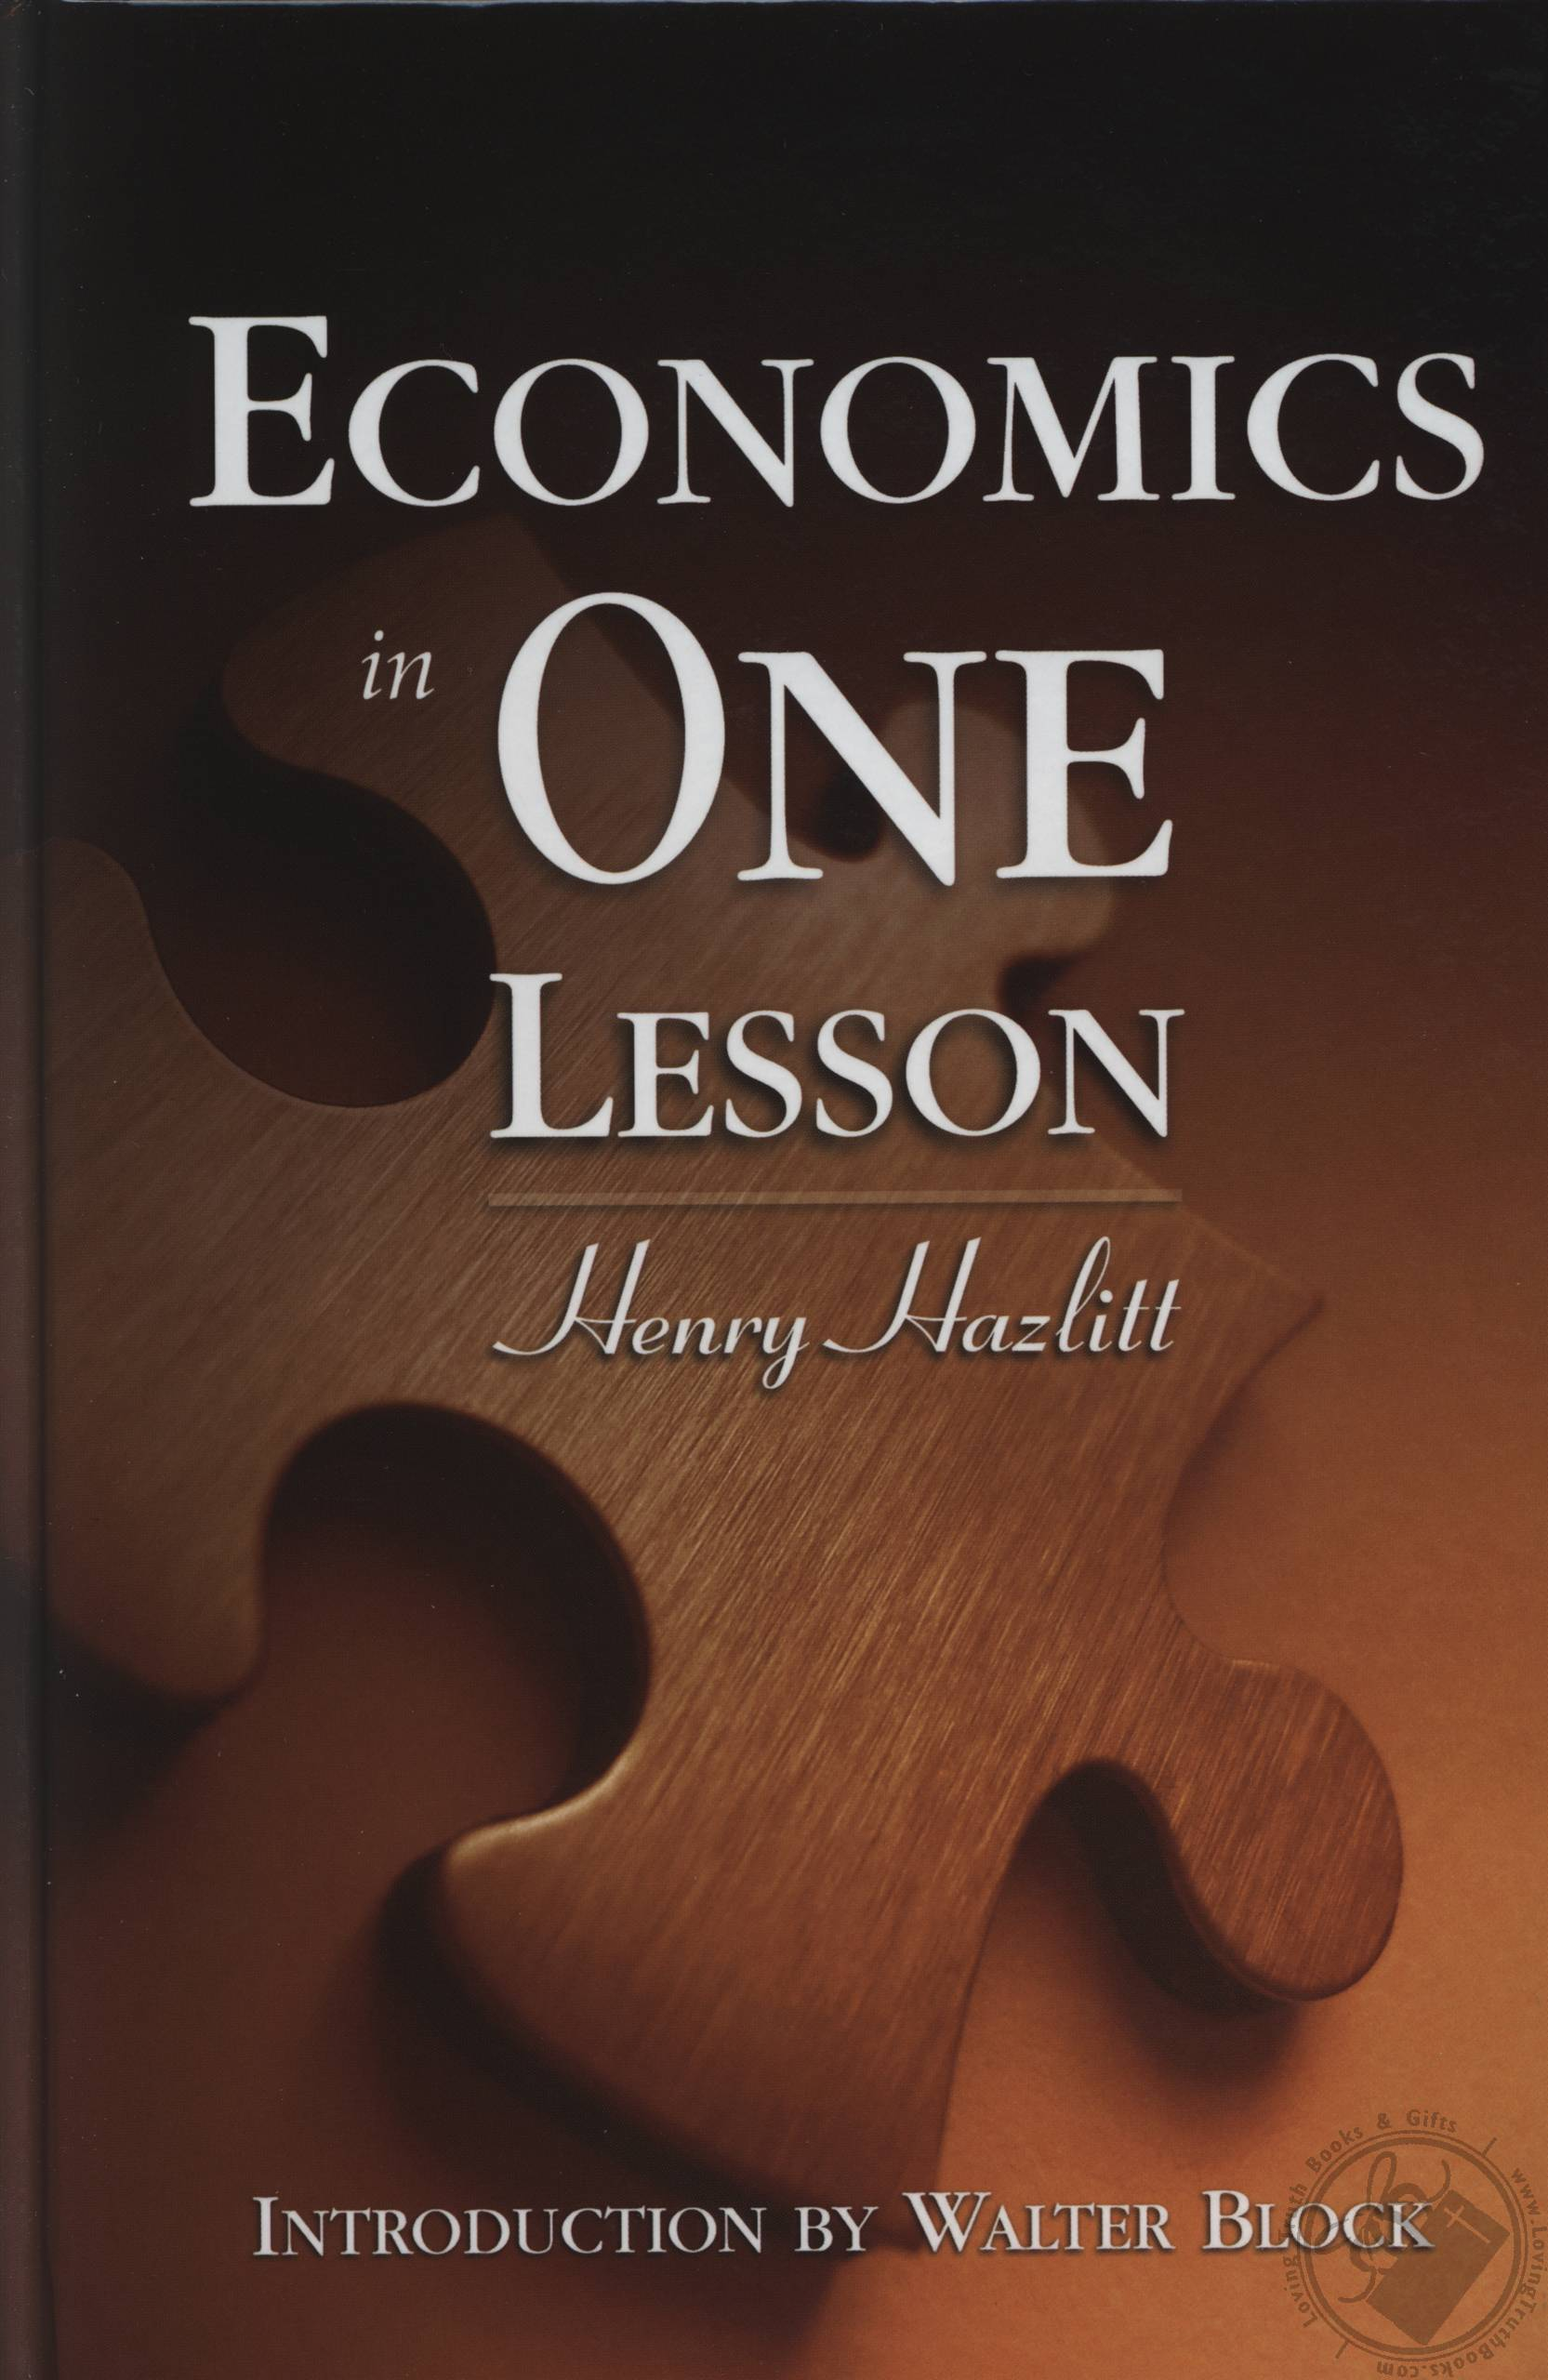 Image result for image of economics in one lesson